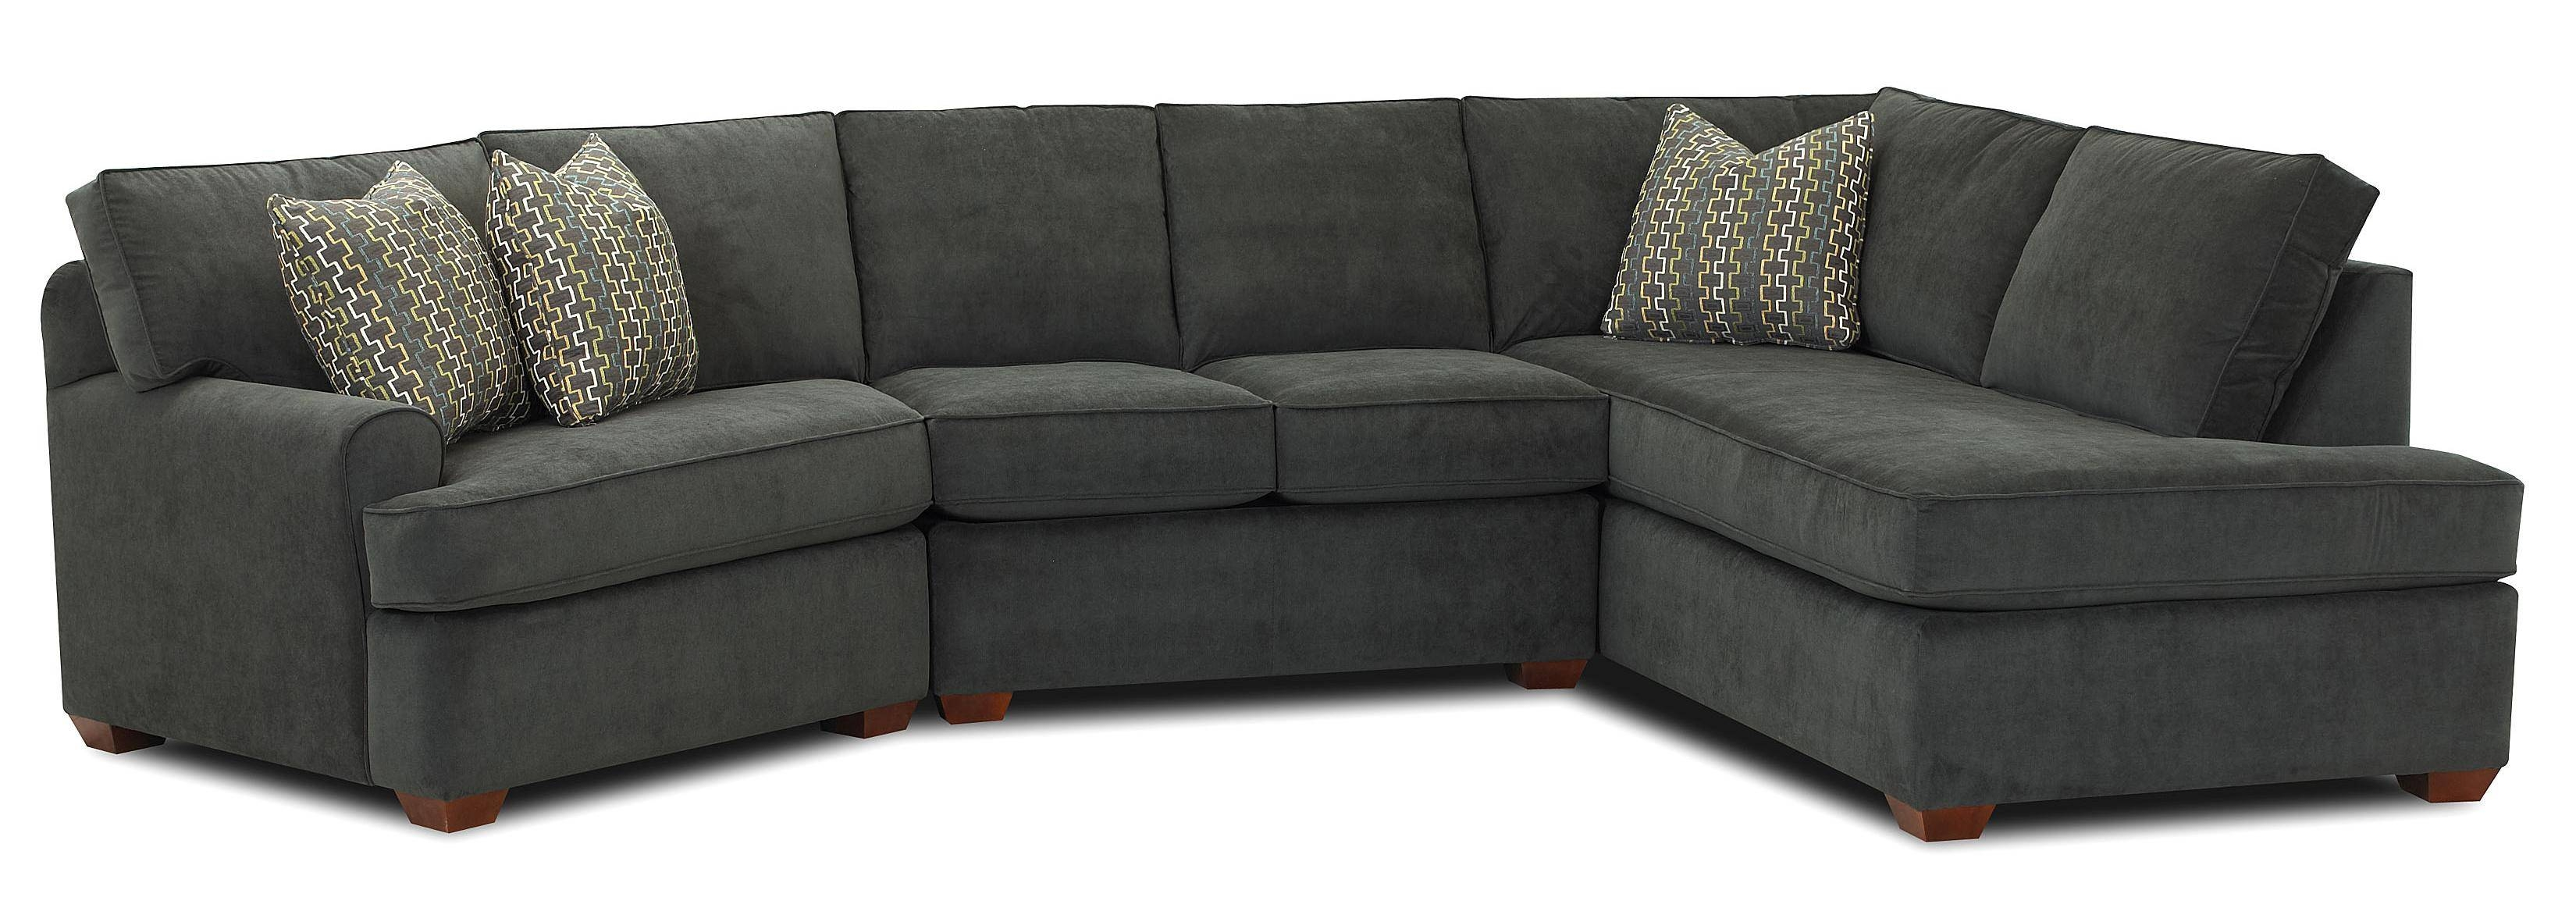 Furniture: Modern Chaise Sectional With Classic Comfortable Design for Big Sofas Sectionals (Image 11 of 30)